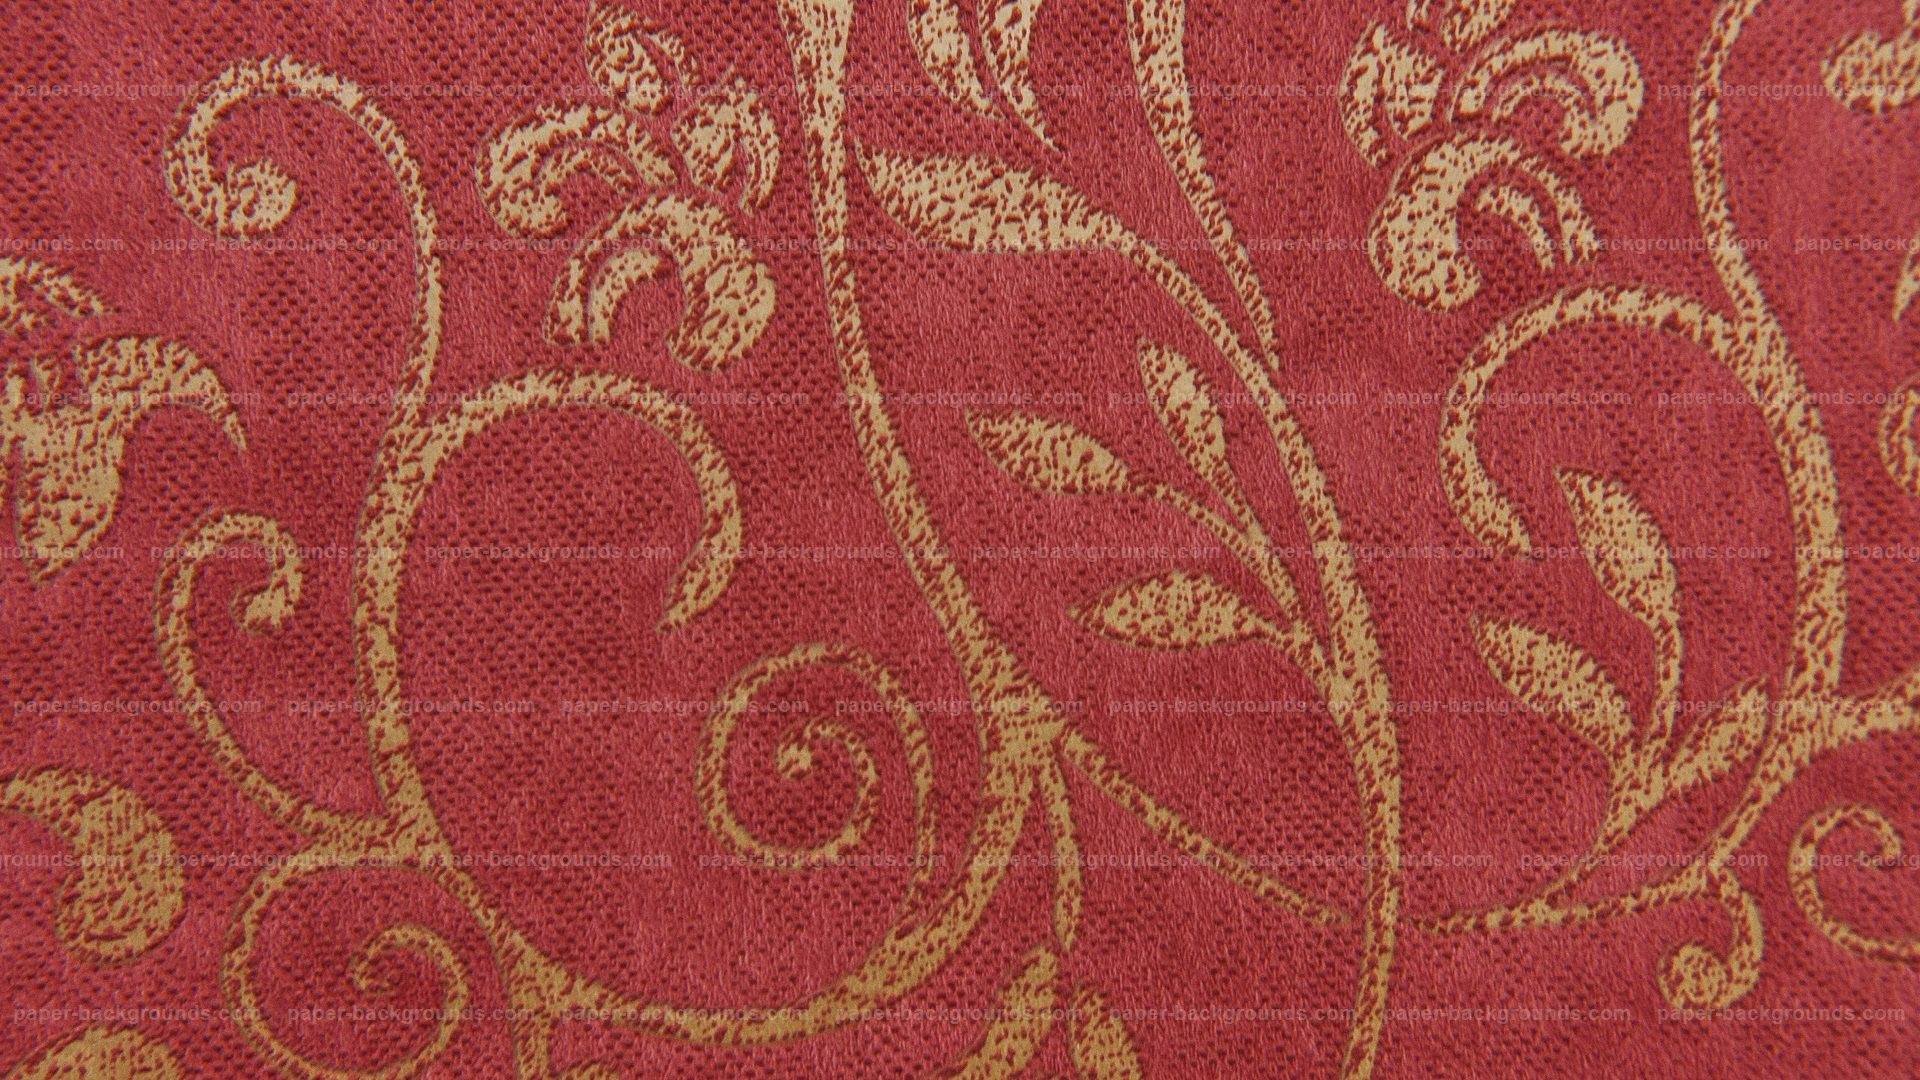 Floral Pattern Carpet Red Carpet Floral Design Texture Background